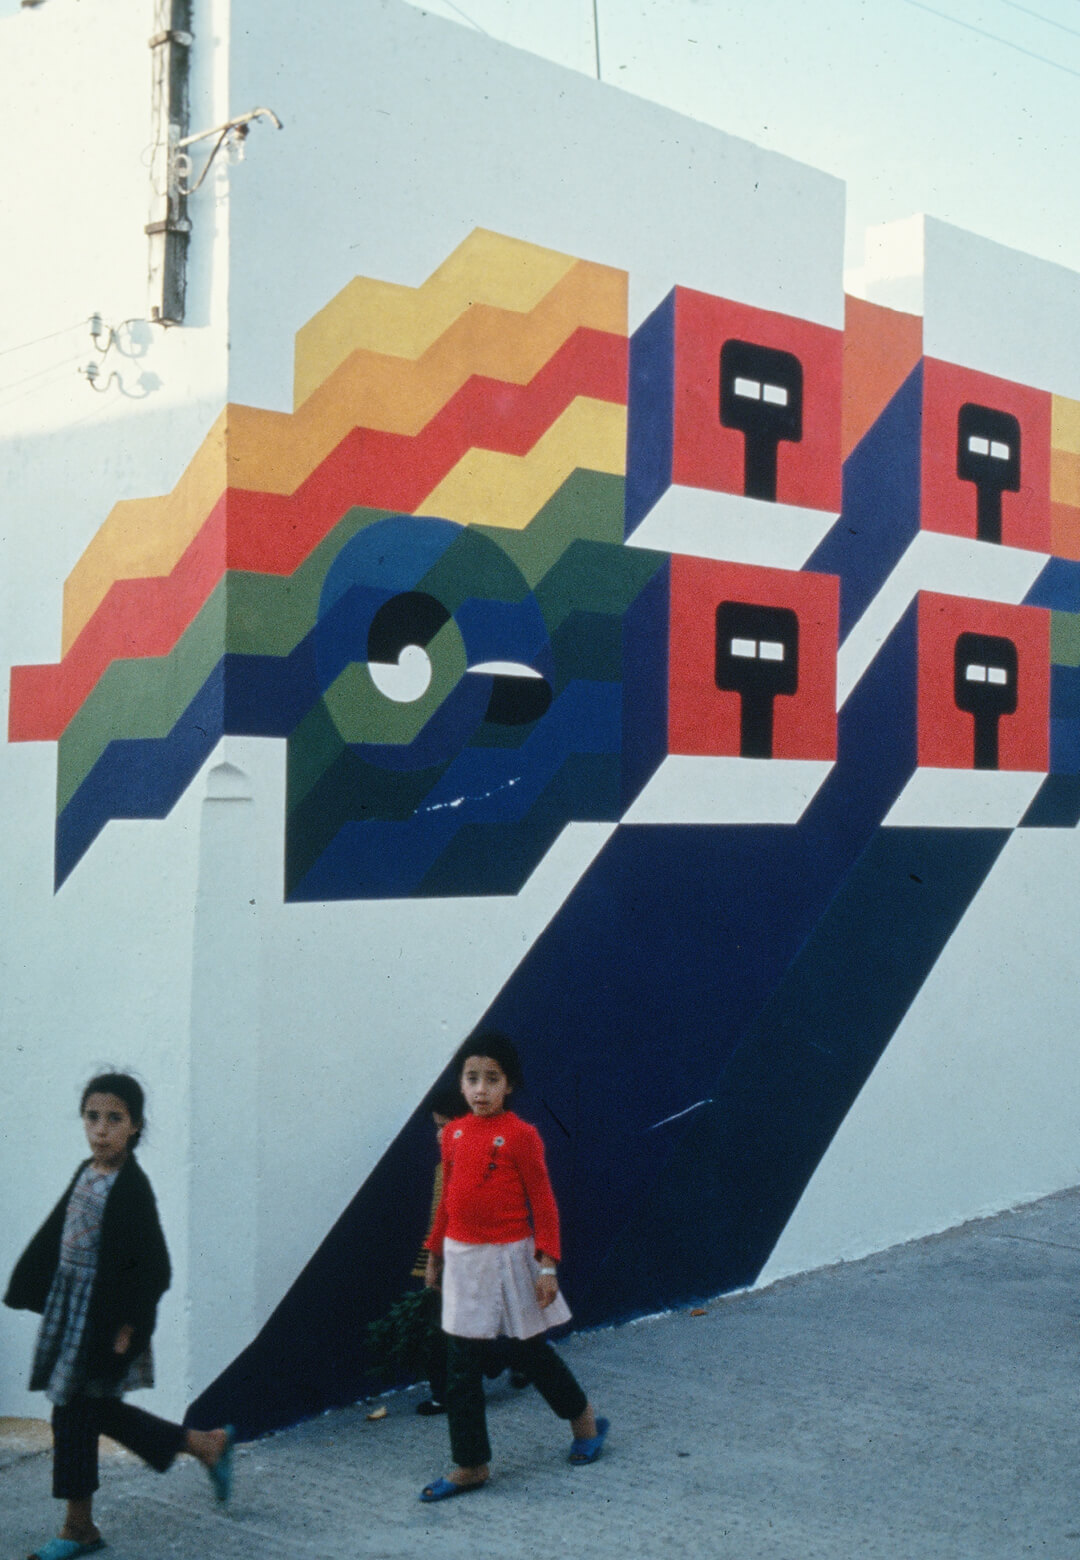 Fresco by Mohammed Chabaa, Asilah Moussem, late 1970s| Safieddine-Melehi Archives | STIRworld